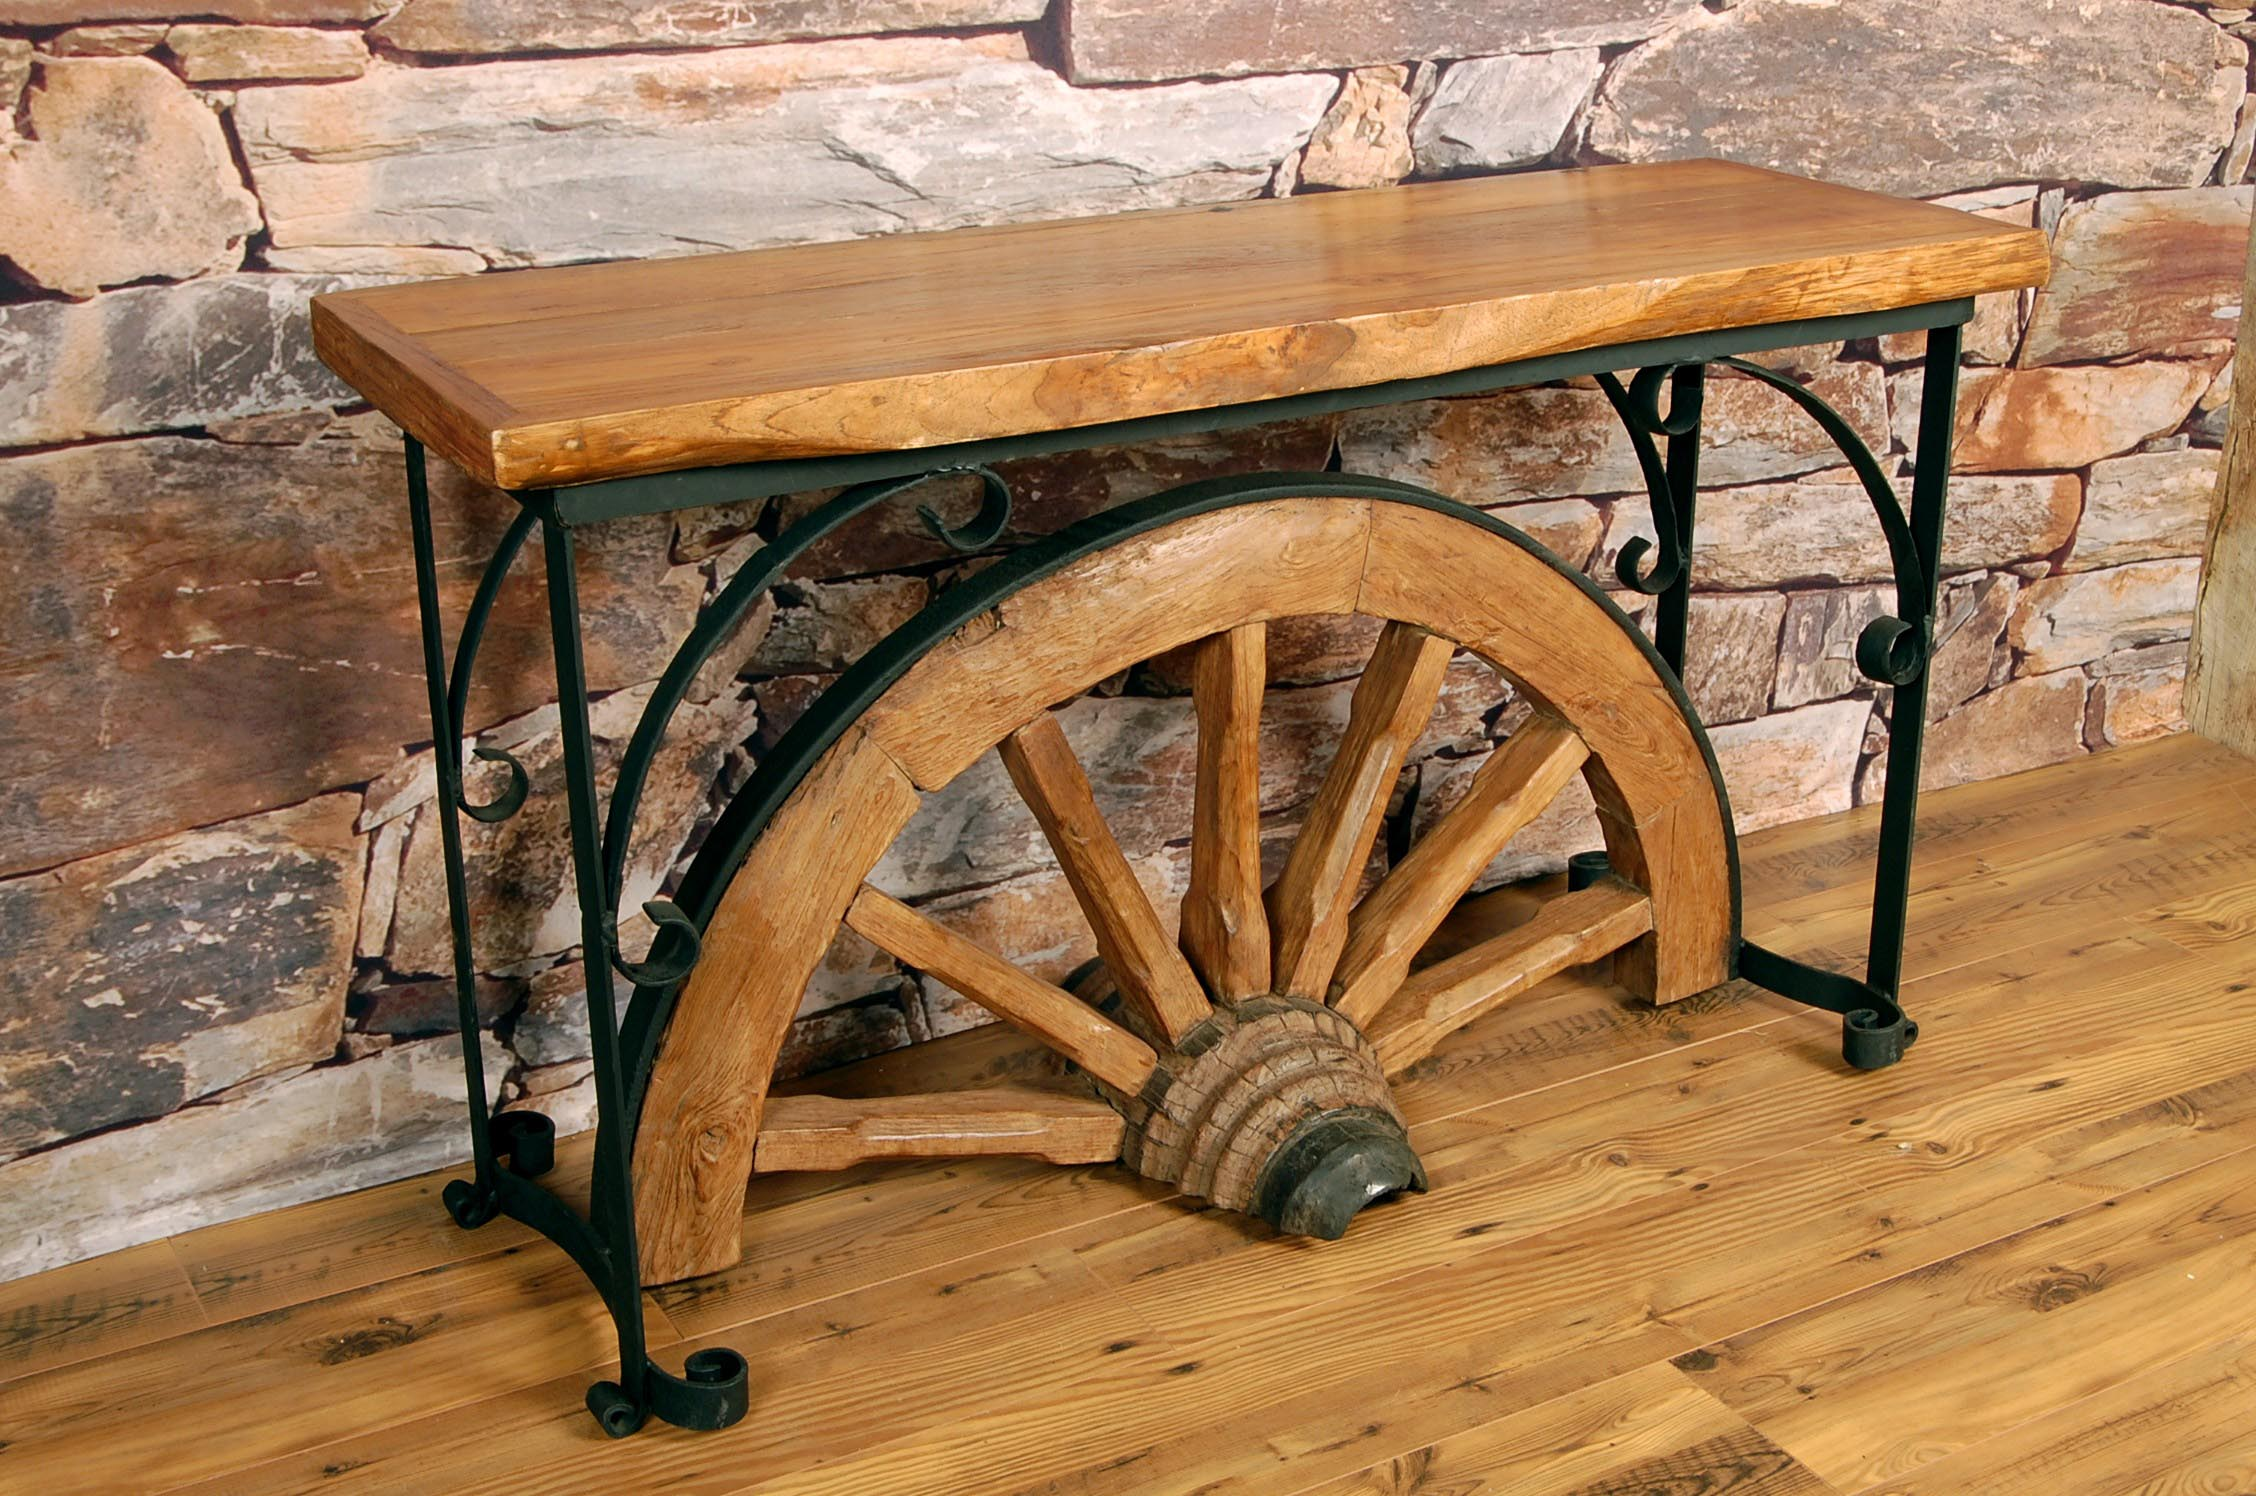 Wooden Wheel Table ~ Wagon wheel coffee table design ideas